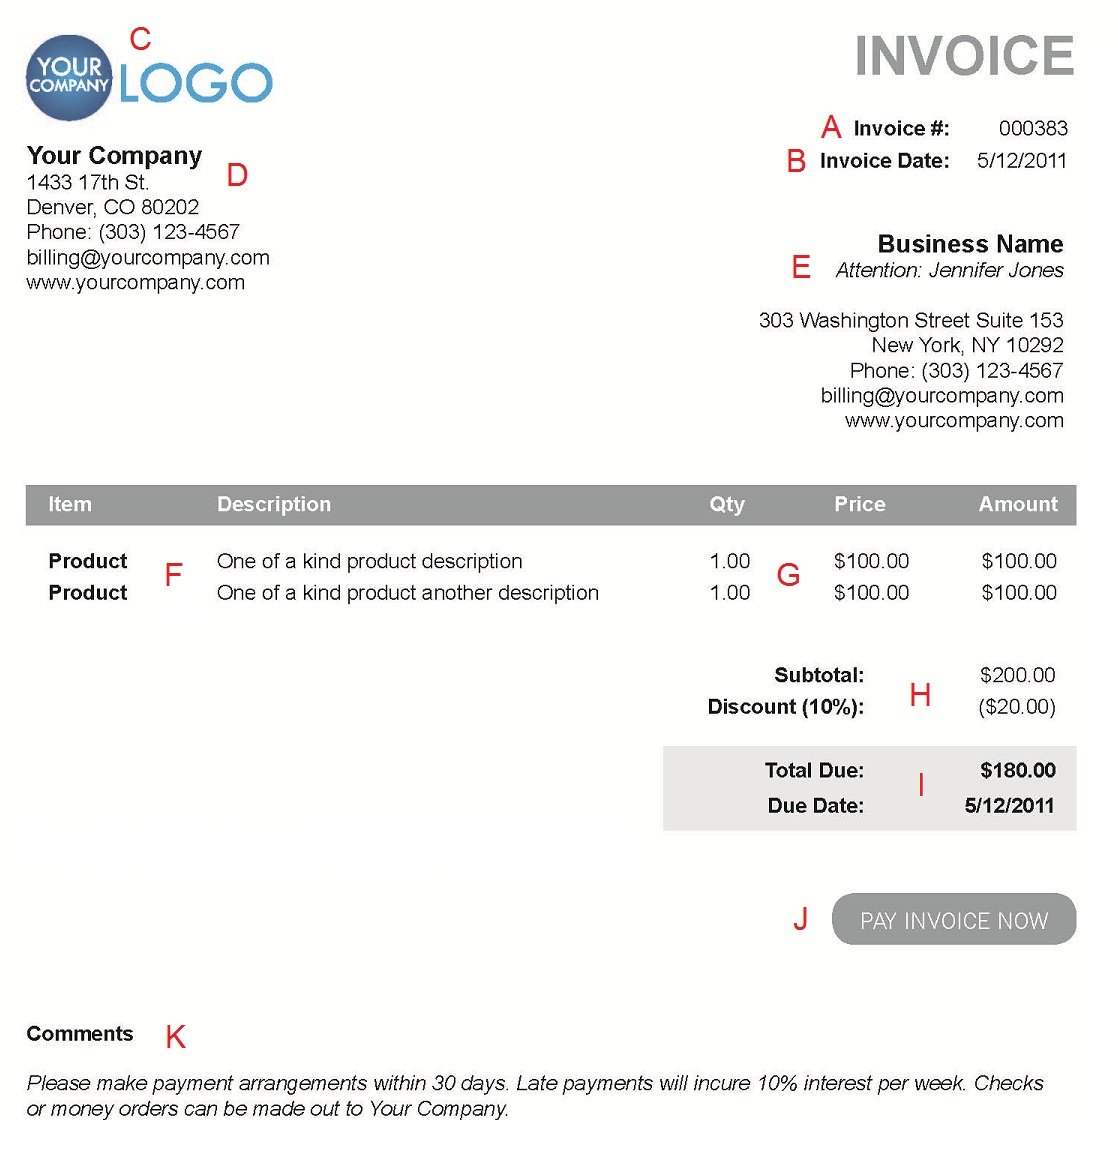 Totallocalus  Pretty The  Different Sections Of An Electronic Payment Invoice With Great A  With Breathtaking Sample Invoice Statement Also Invoice Processing System In Addition Free Online Printable Invoices And Invoice And Receipt Template As Well As Invoice Copy Sample Additionally Sample Invoice In Word Format From Paysimplecom With Totallocalus  Great The  Different Sections Of An Electronic Payment Invoice With Breathtaking A  And Pretty Sample Invoice Statement Also Invoice Processing System In Addition Free Online Printable Invoices From Paysimplecom